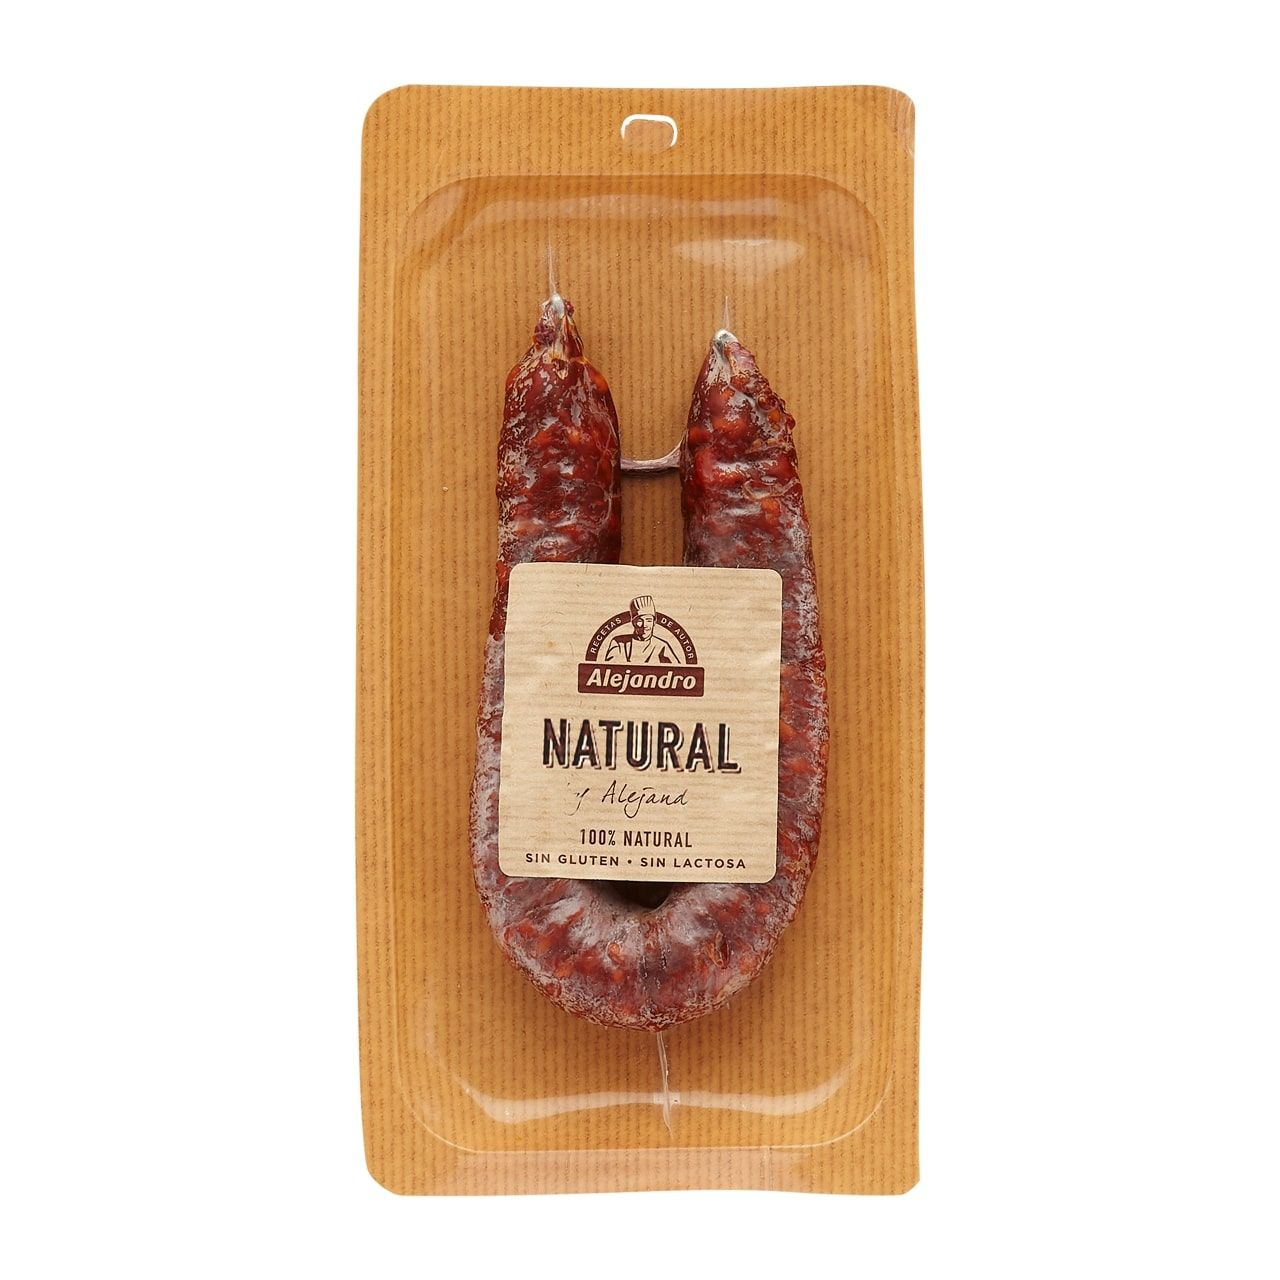 Alejandro Semi-cured Chorizo Deli Meats